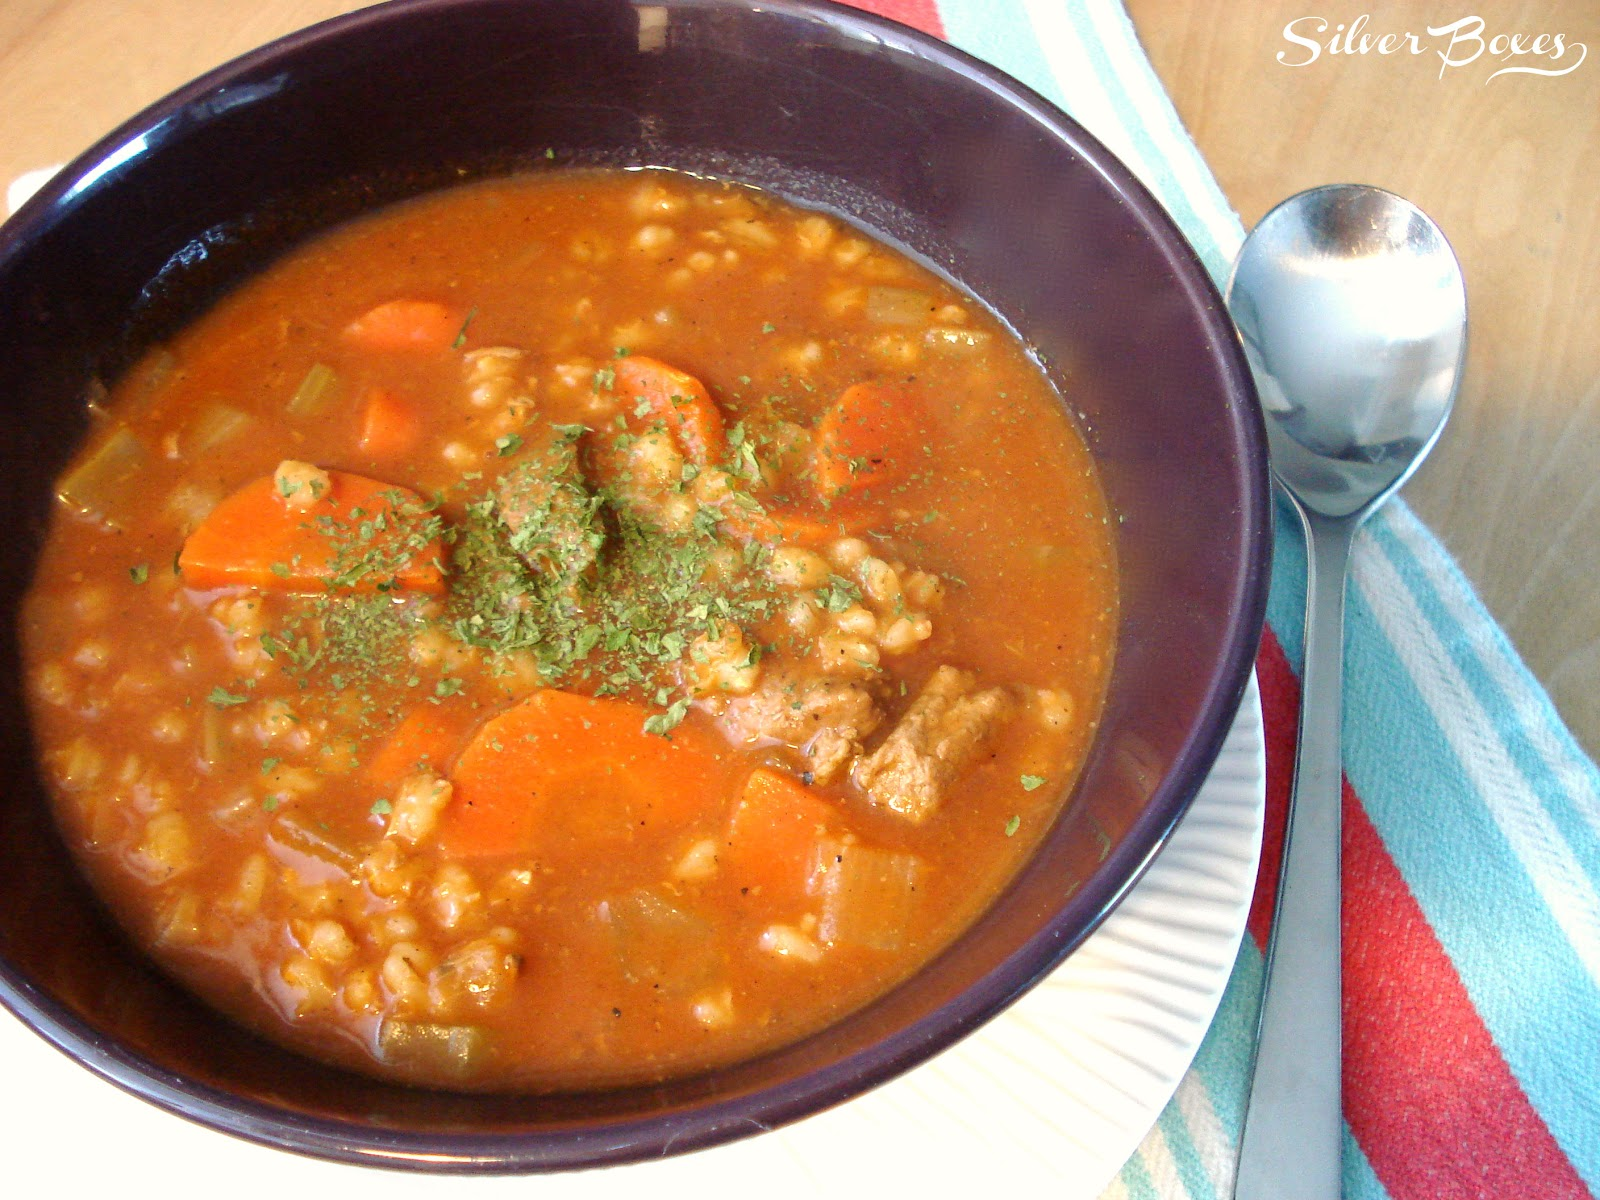 Silver Boxes: Beef & Barley Soup